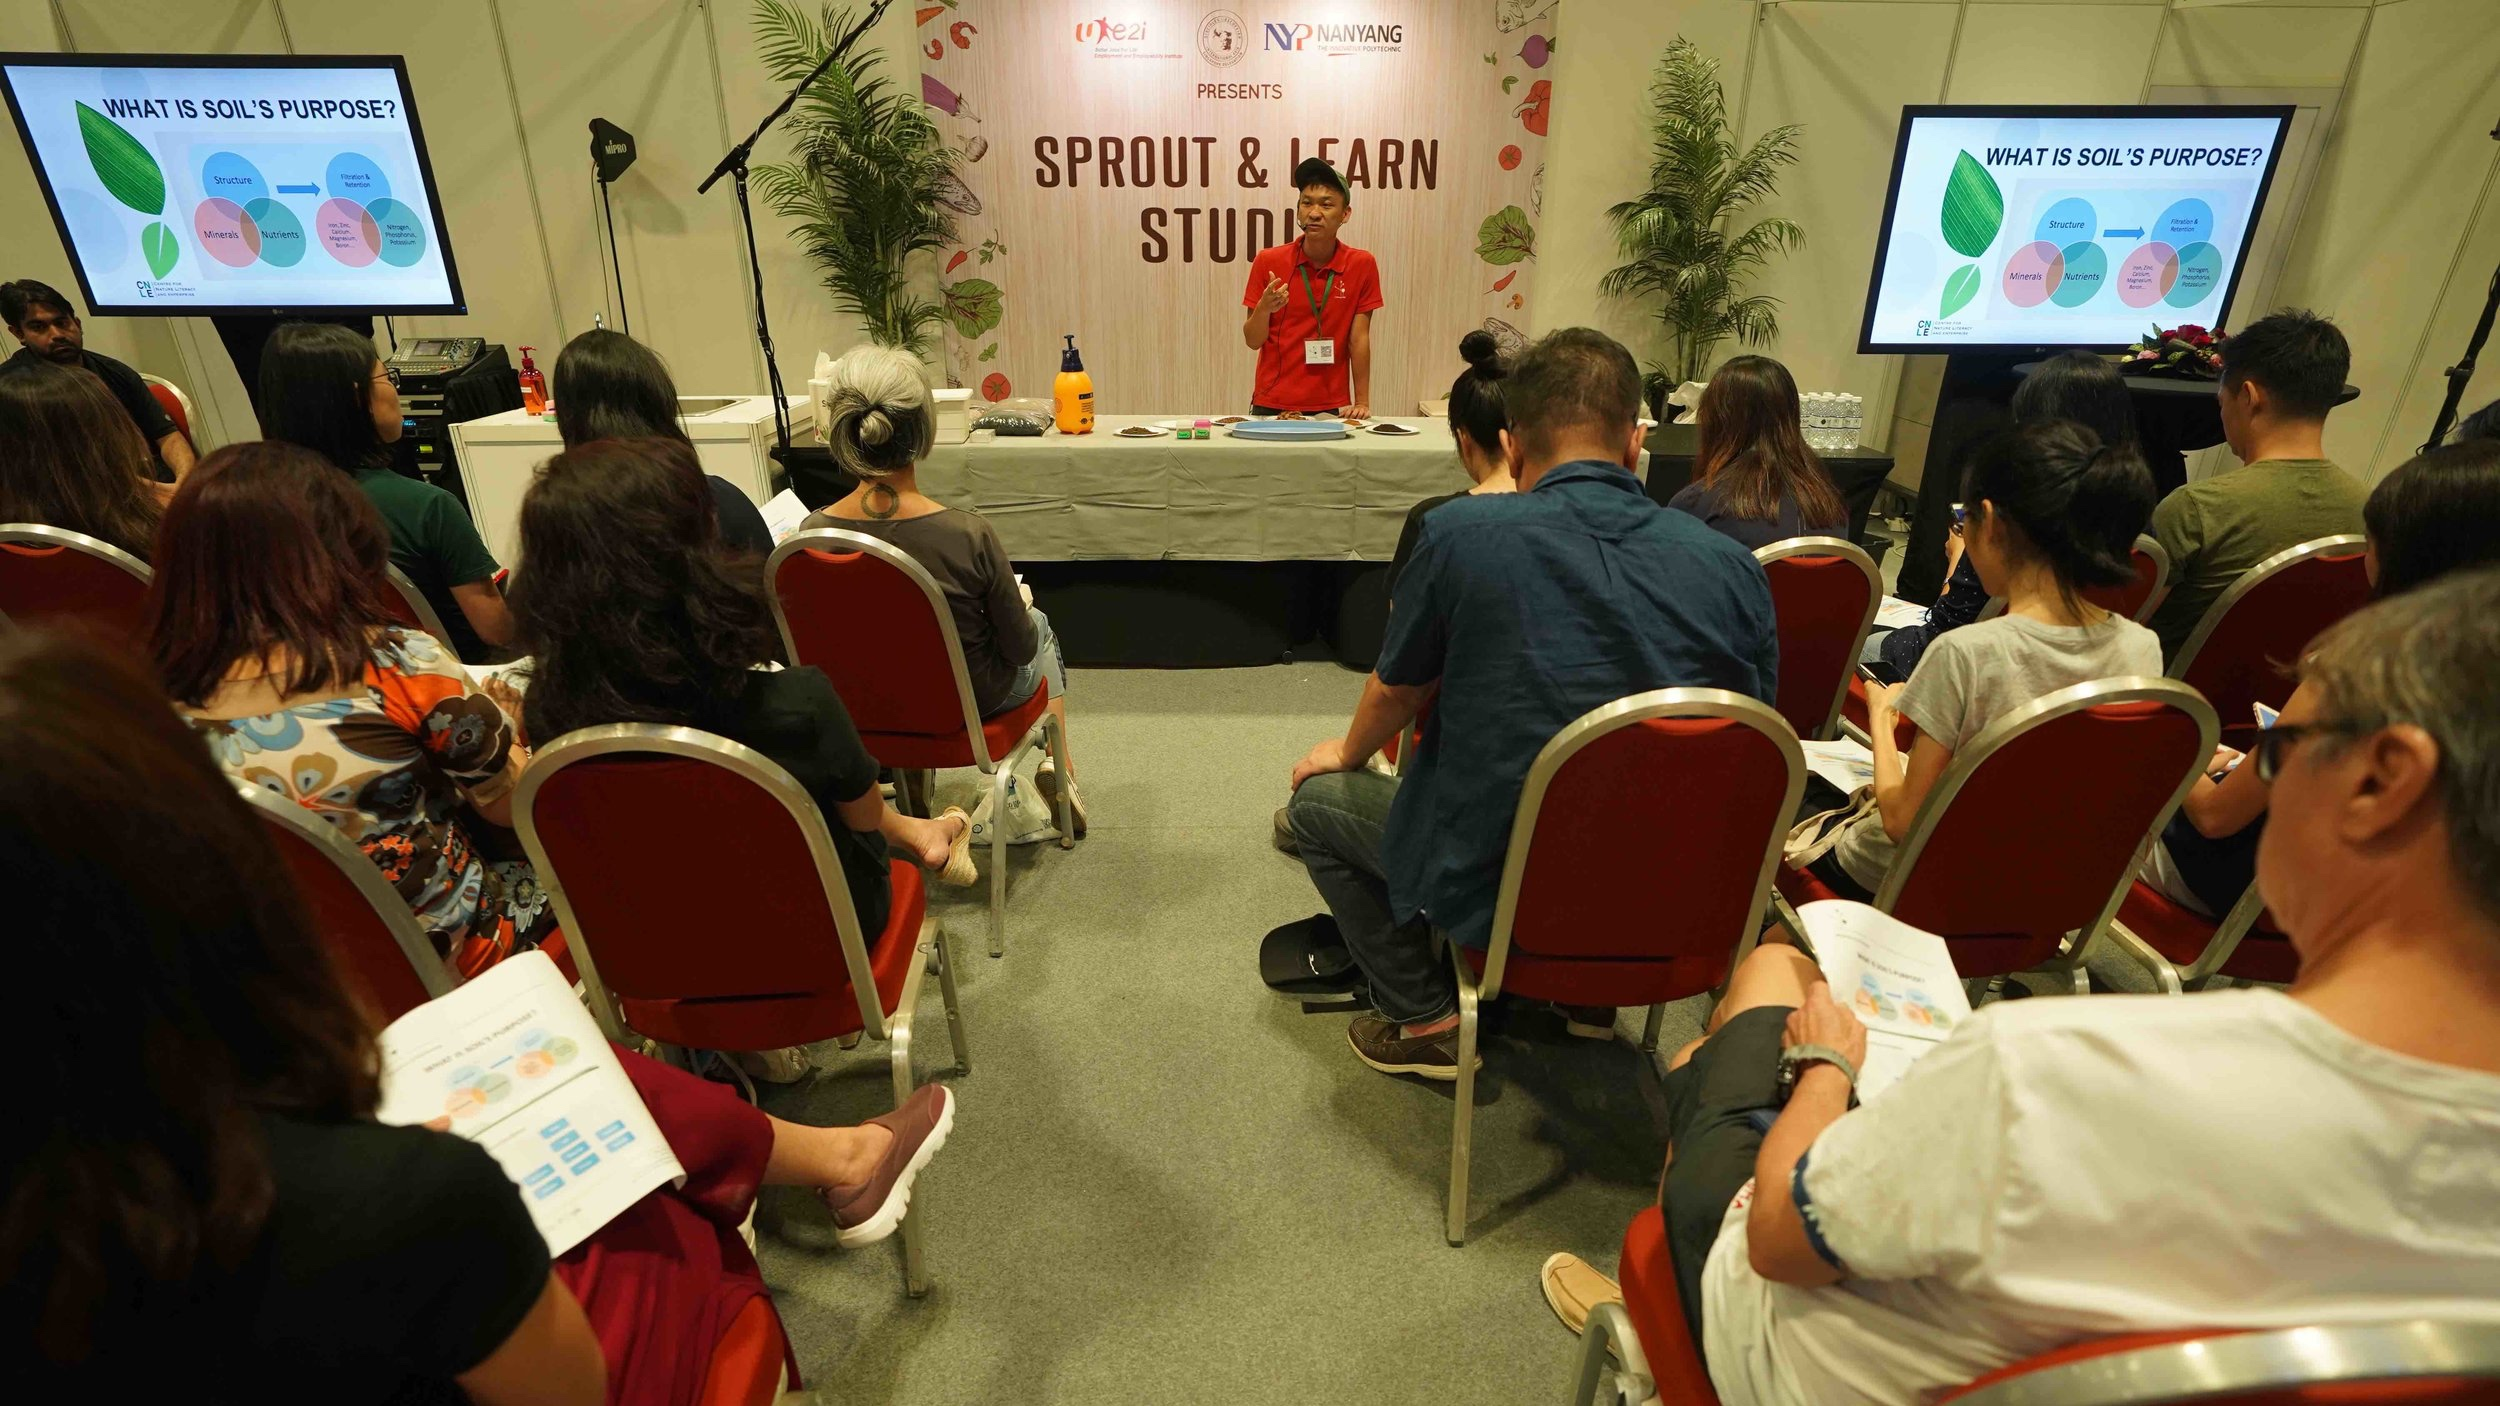 Sprout Singapore - Sprout & Learn 2019.jpg